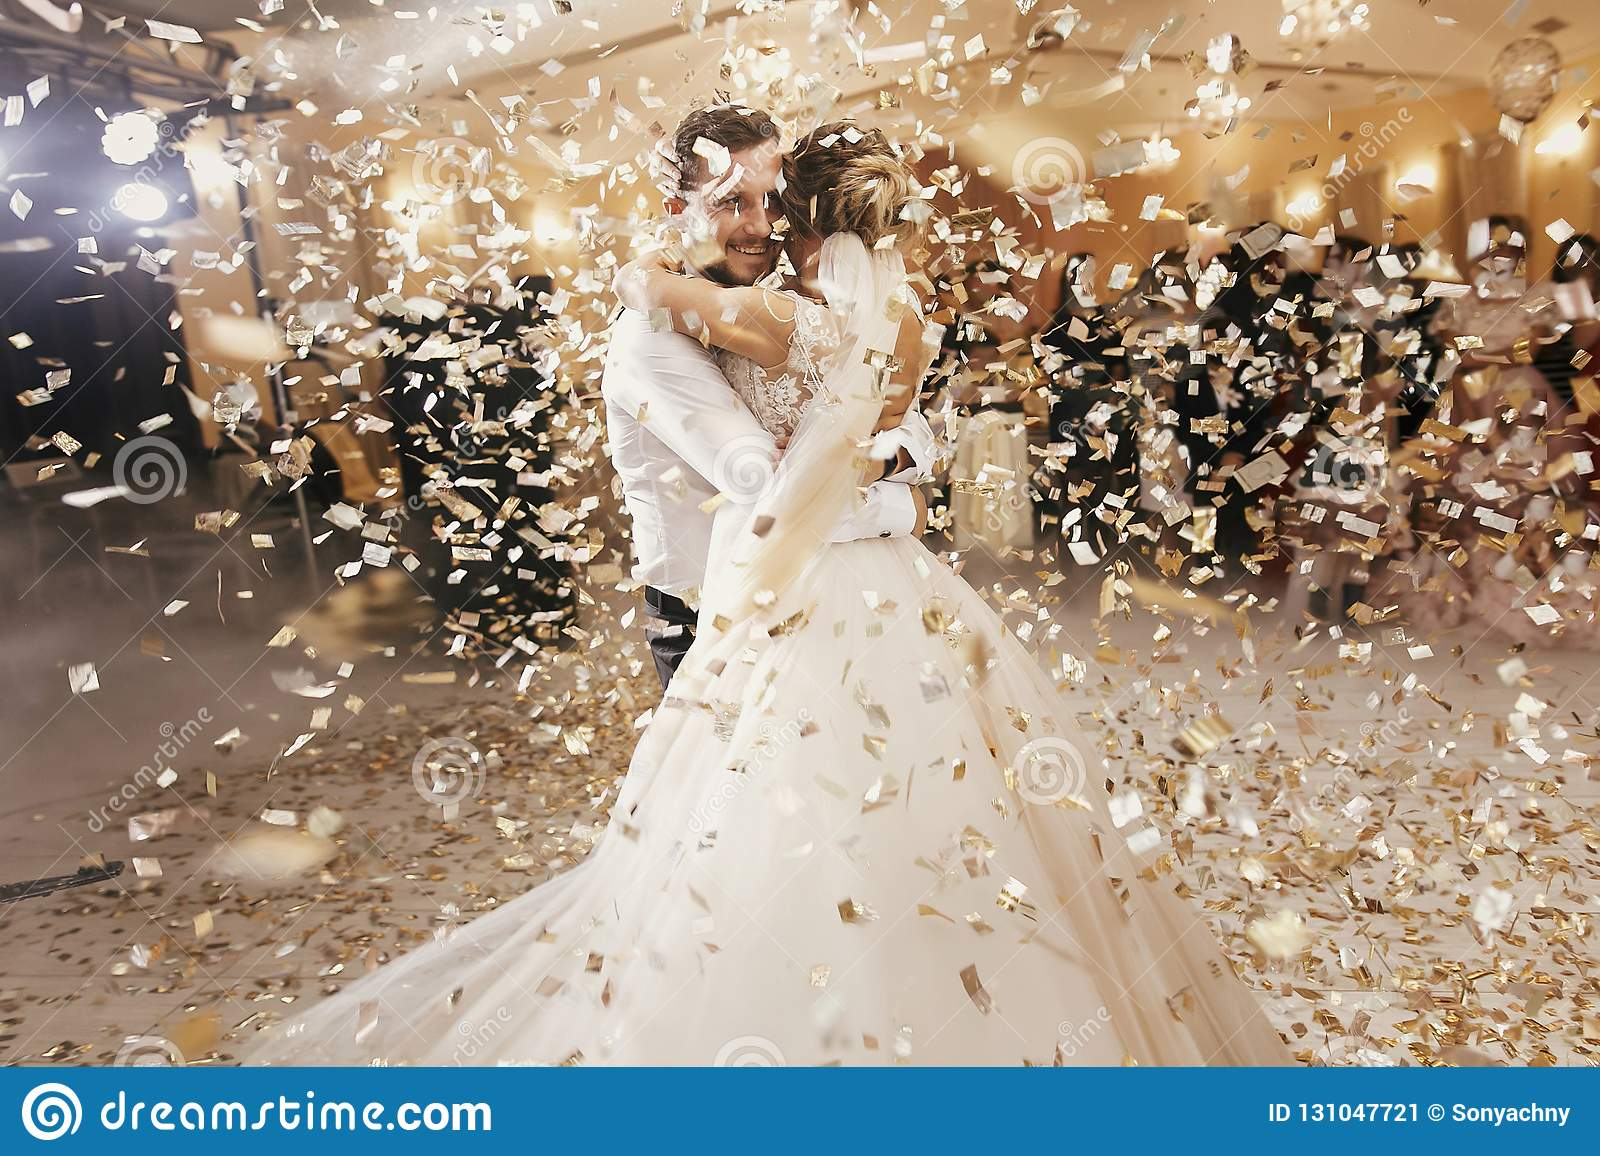 Gorgeous bride and stylish groom dancing under golden confetti a